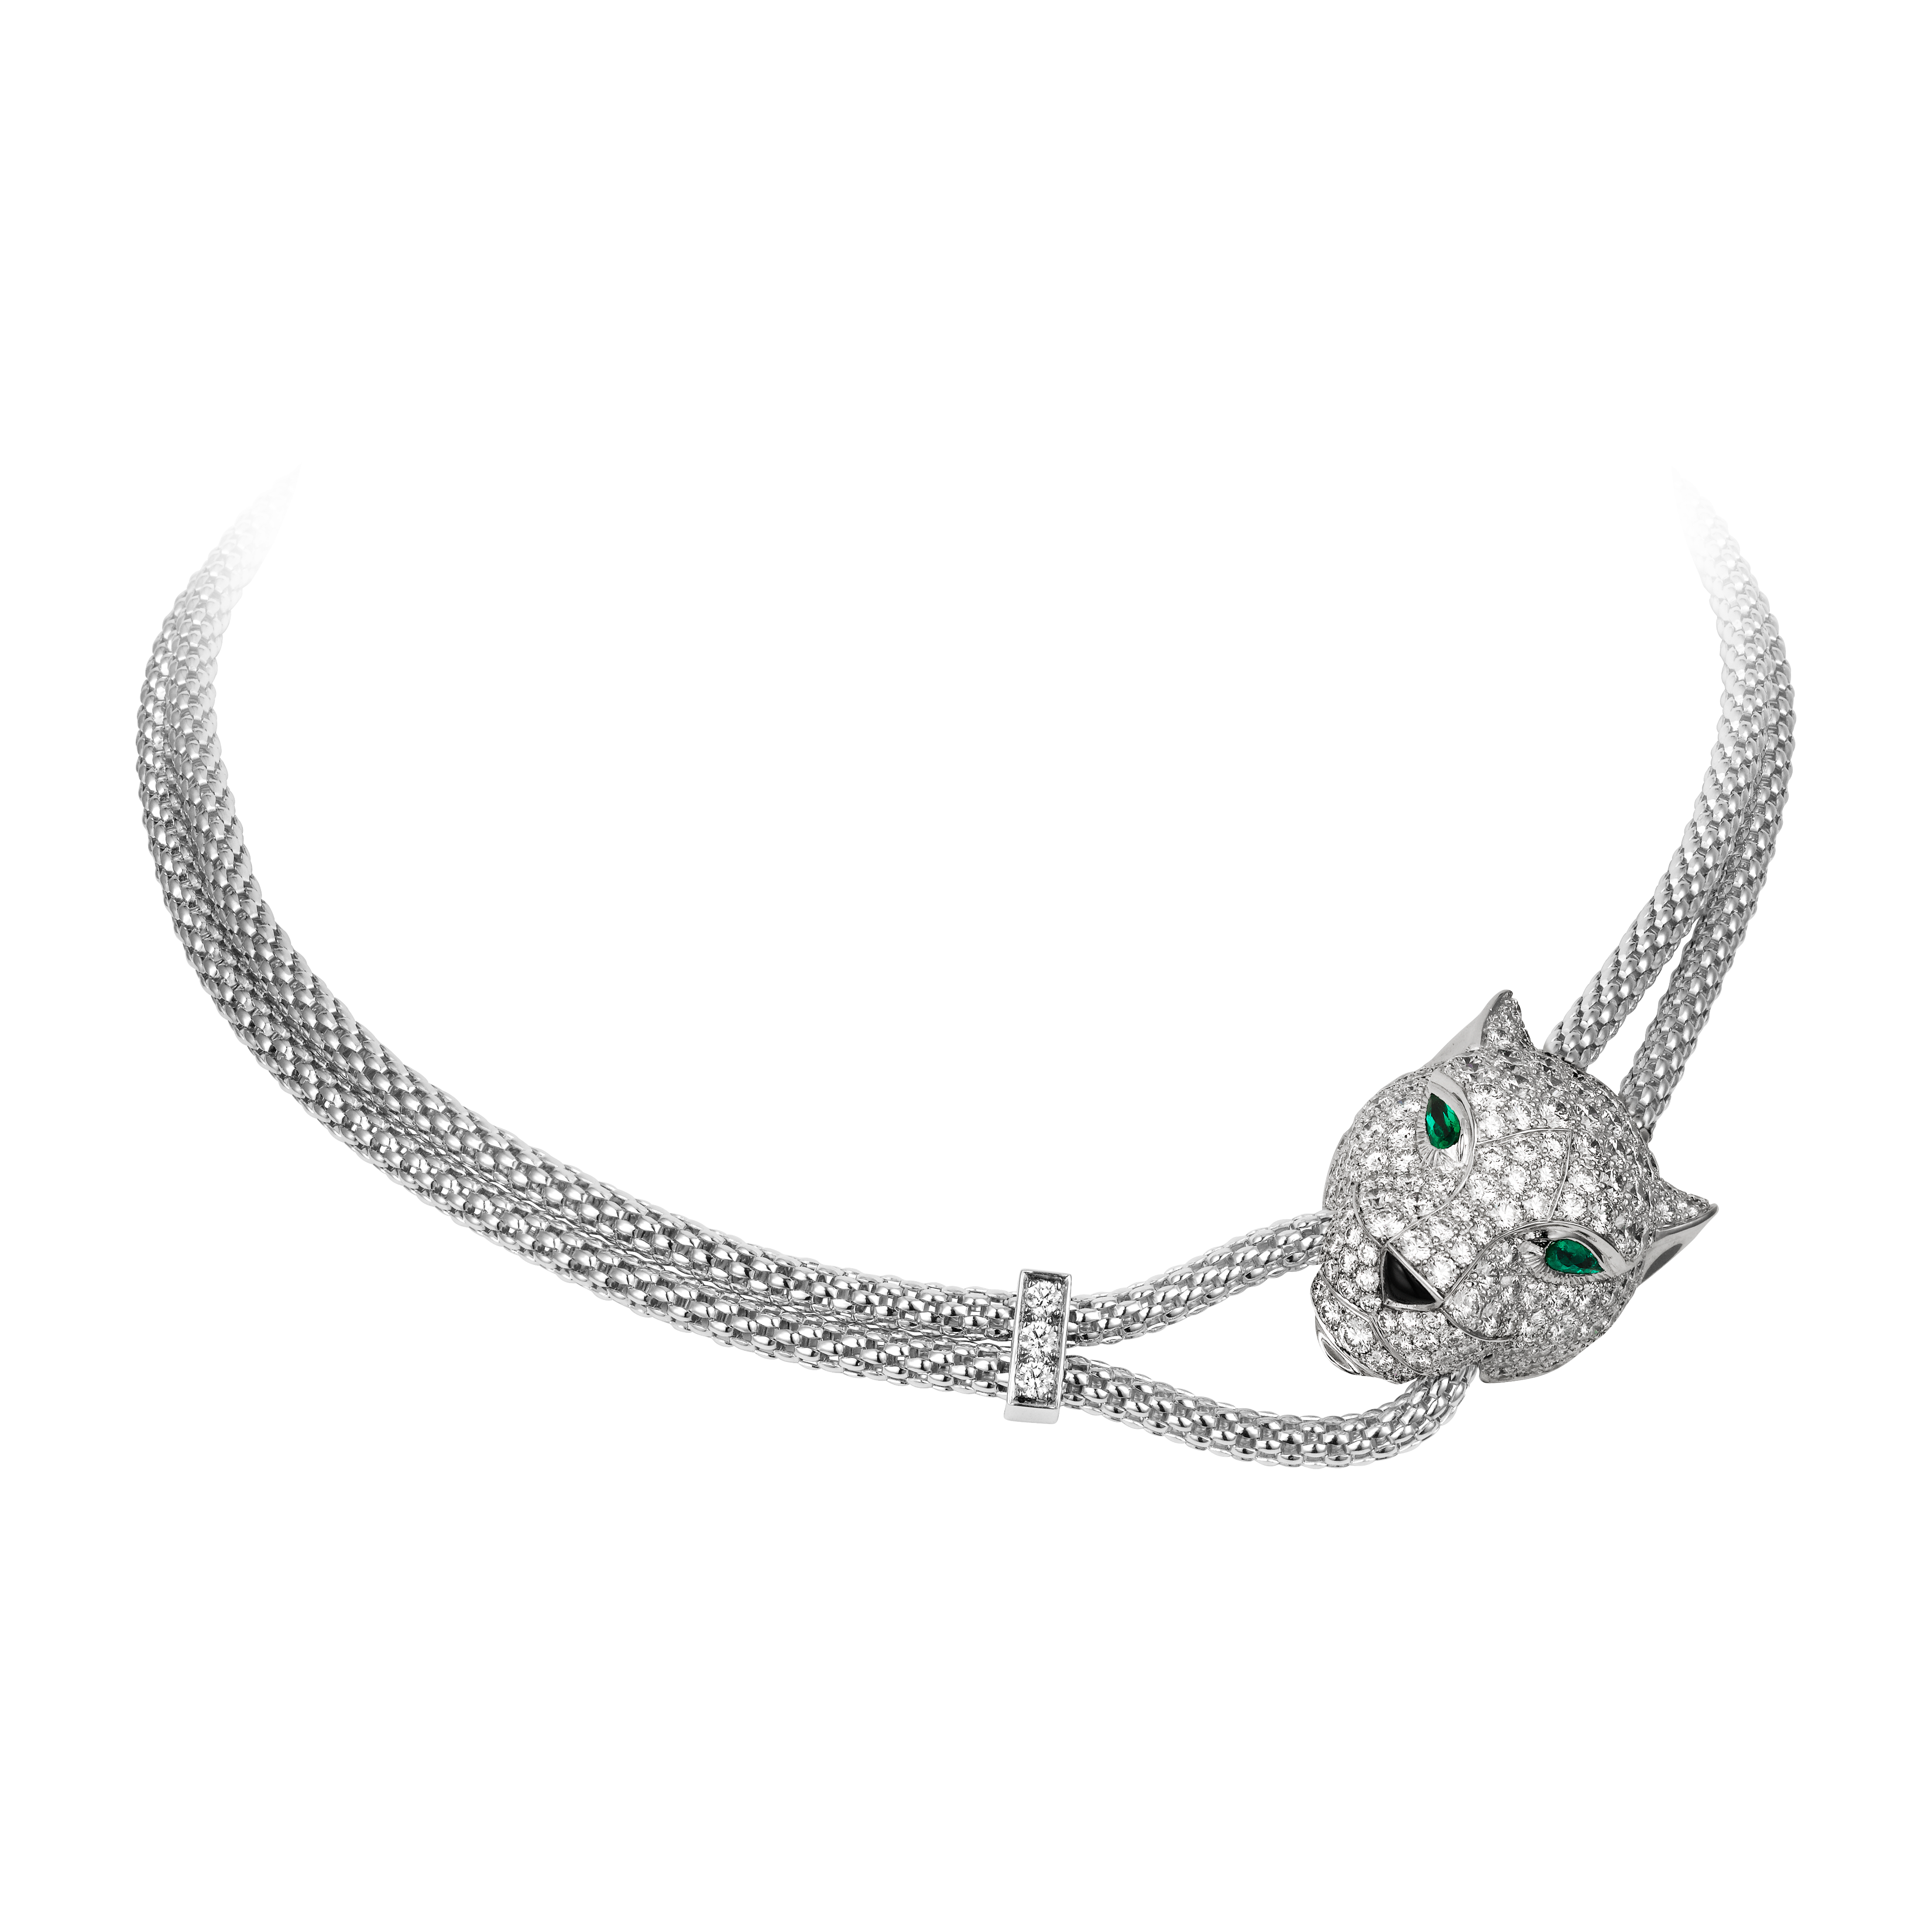 2c64757fce7 Panthère de Cartier necklace